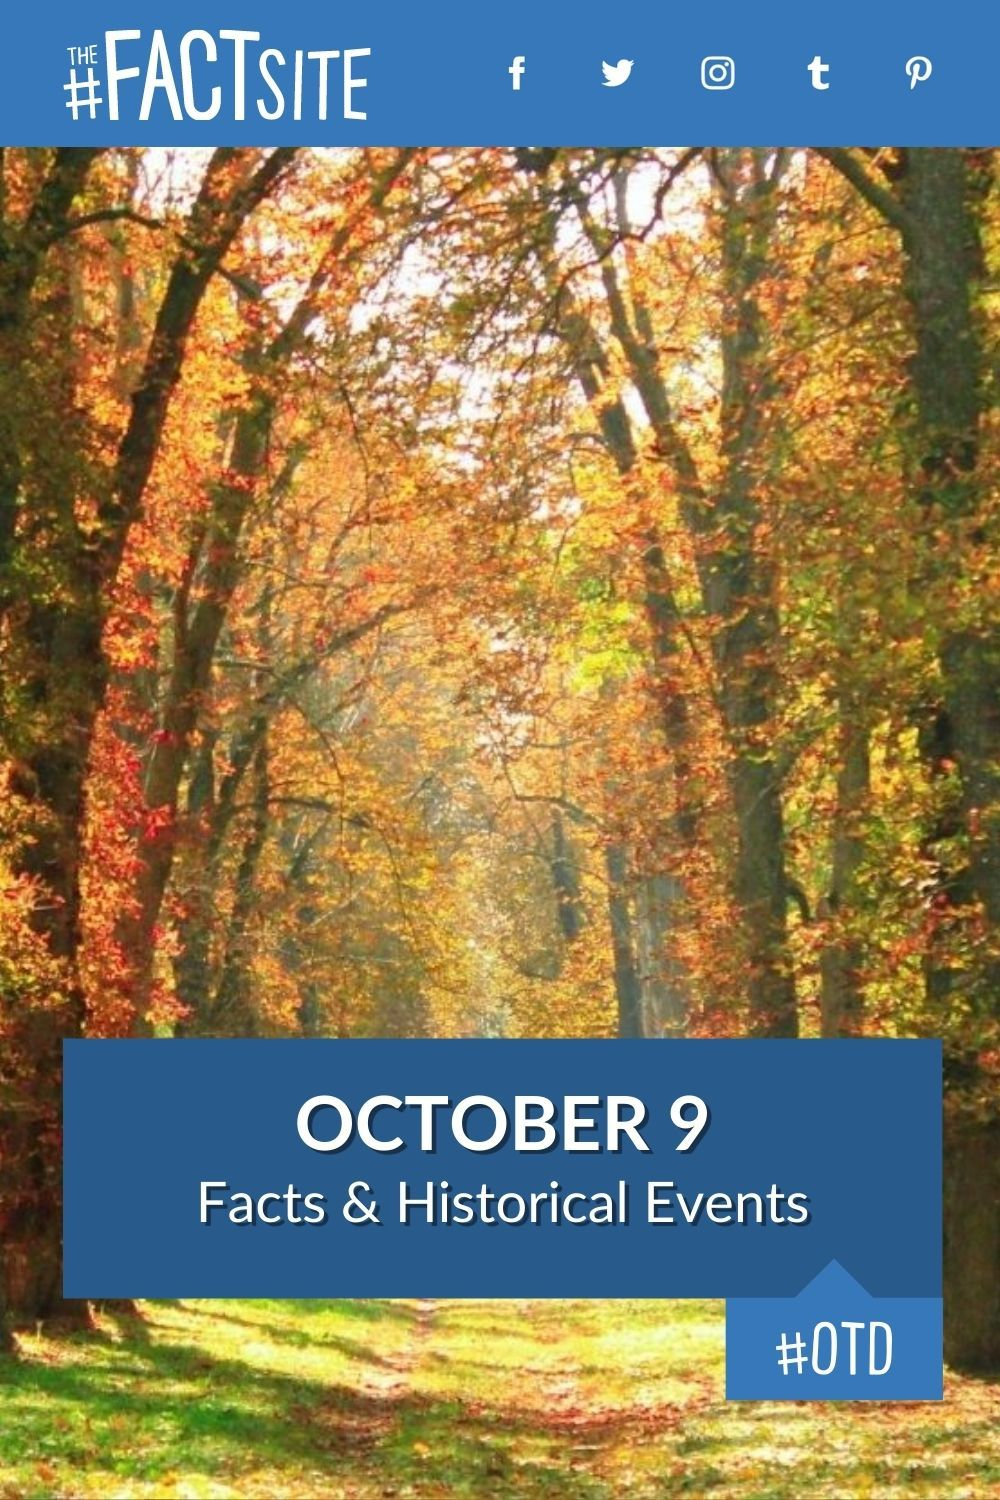 Facts & Historic Events That Happened on October 9